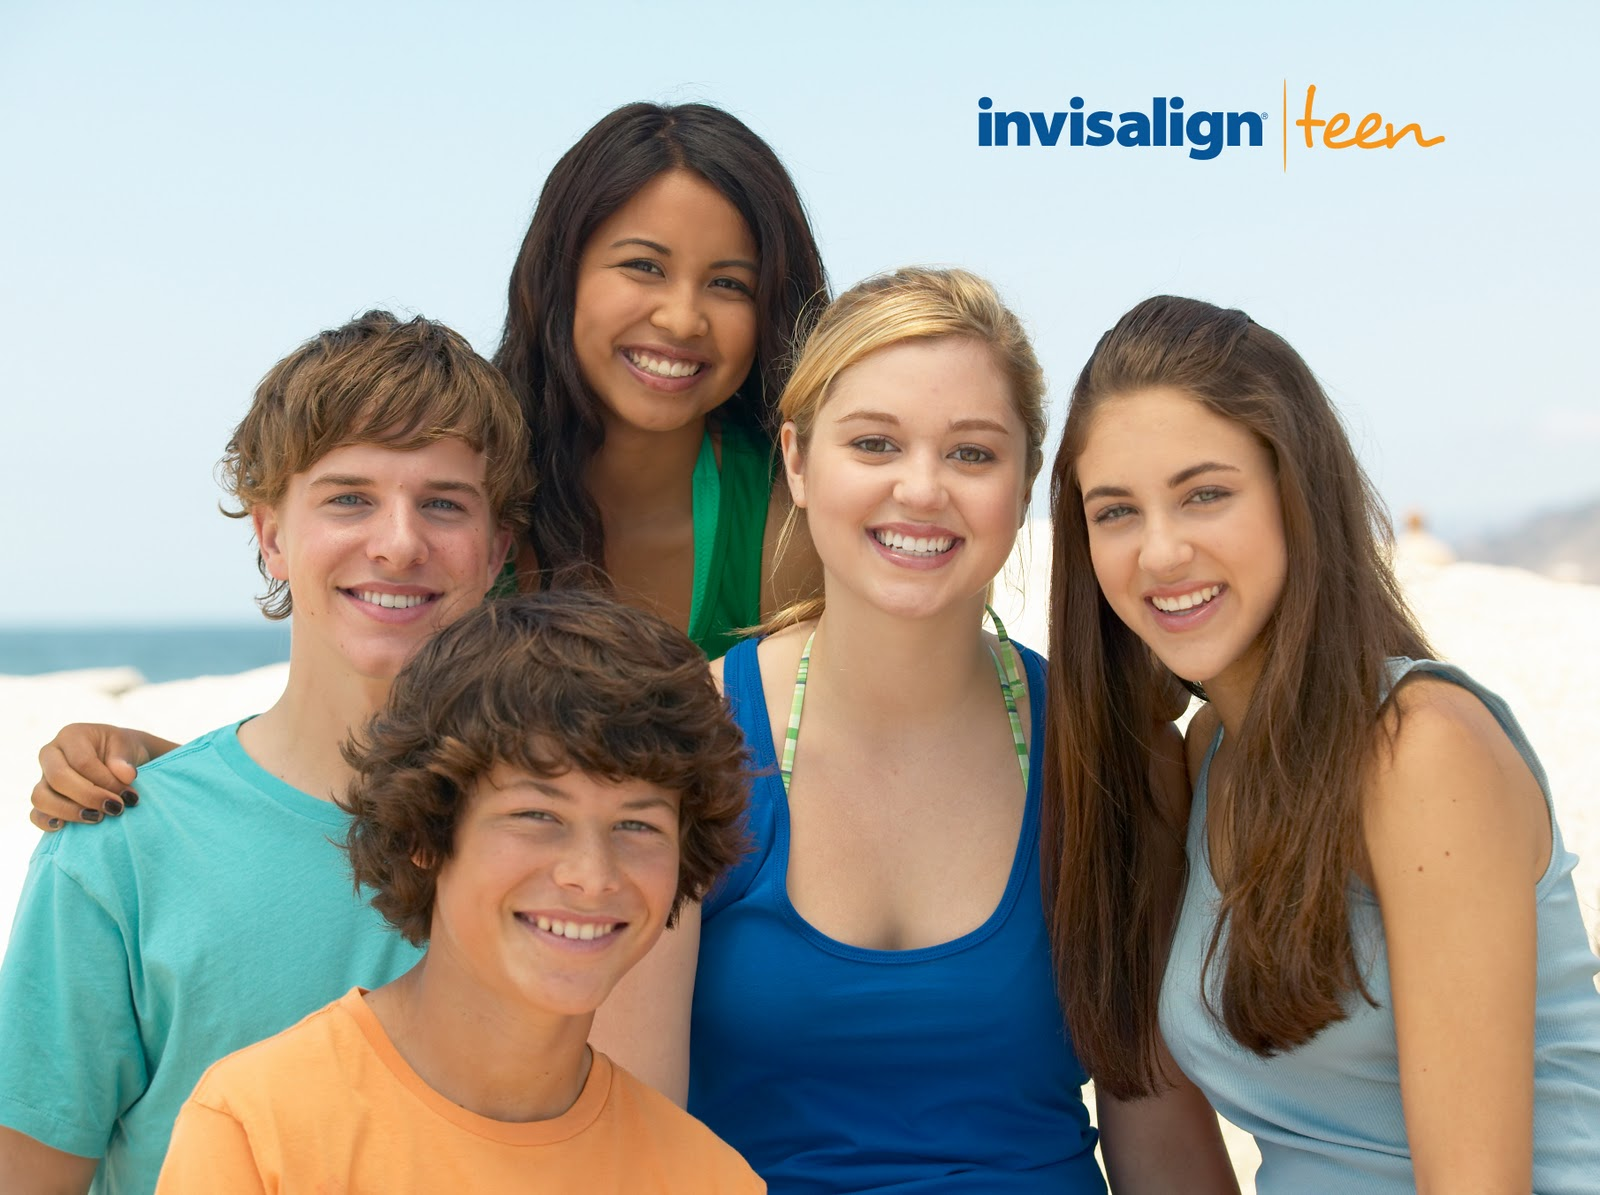 Invisalignteengroup  Jacksonville Fl Orthodontist. Aurora University Nursing Fidelity High Yield. Fleming Island Elementary Sql Bind Parameters. Settling Credit Card Debts Cfa Study Programs. Radiologic Technology Program. Home Monitoring Service Nonprofit Board Member. Harvard Acceptance Requirements. Training For Microsoft Project. Content Curator Job Description